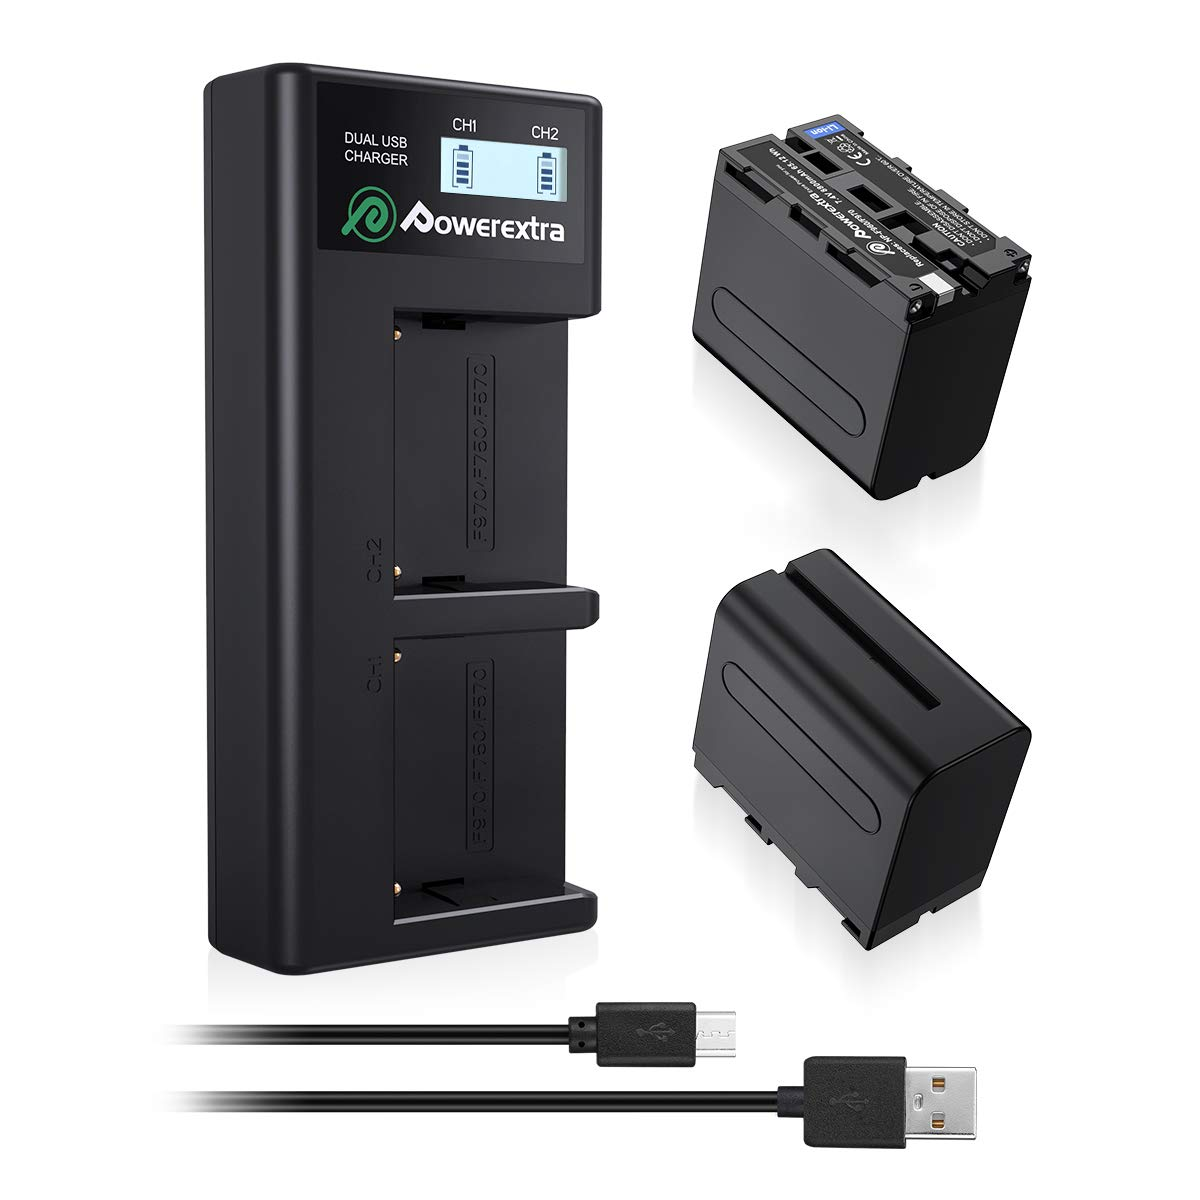 Powerextra 2 Pack Replacement Sony NP-F970 Battery and Smart LCD Display Dual USB Charger for Sony NP-F930 NP-F950 NP-F960 Battery and Sony CCD-SC55, TR516, TR716, TR818, TR910, TR917